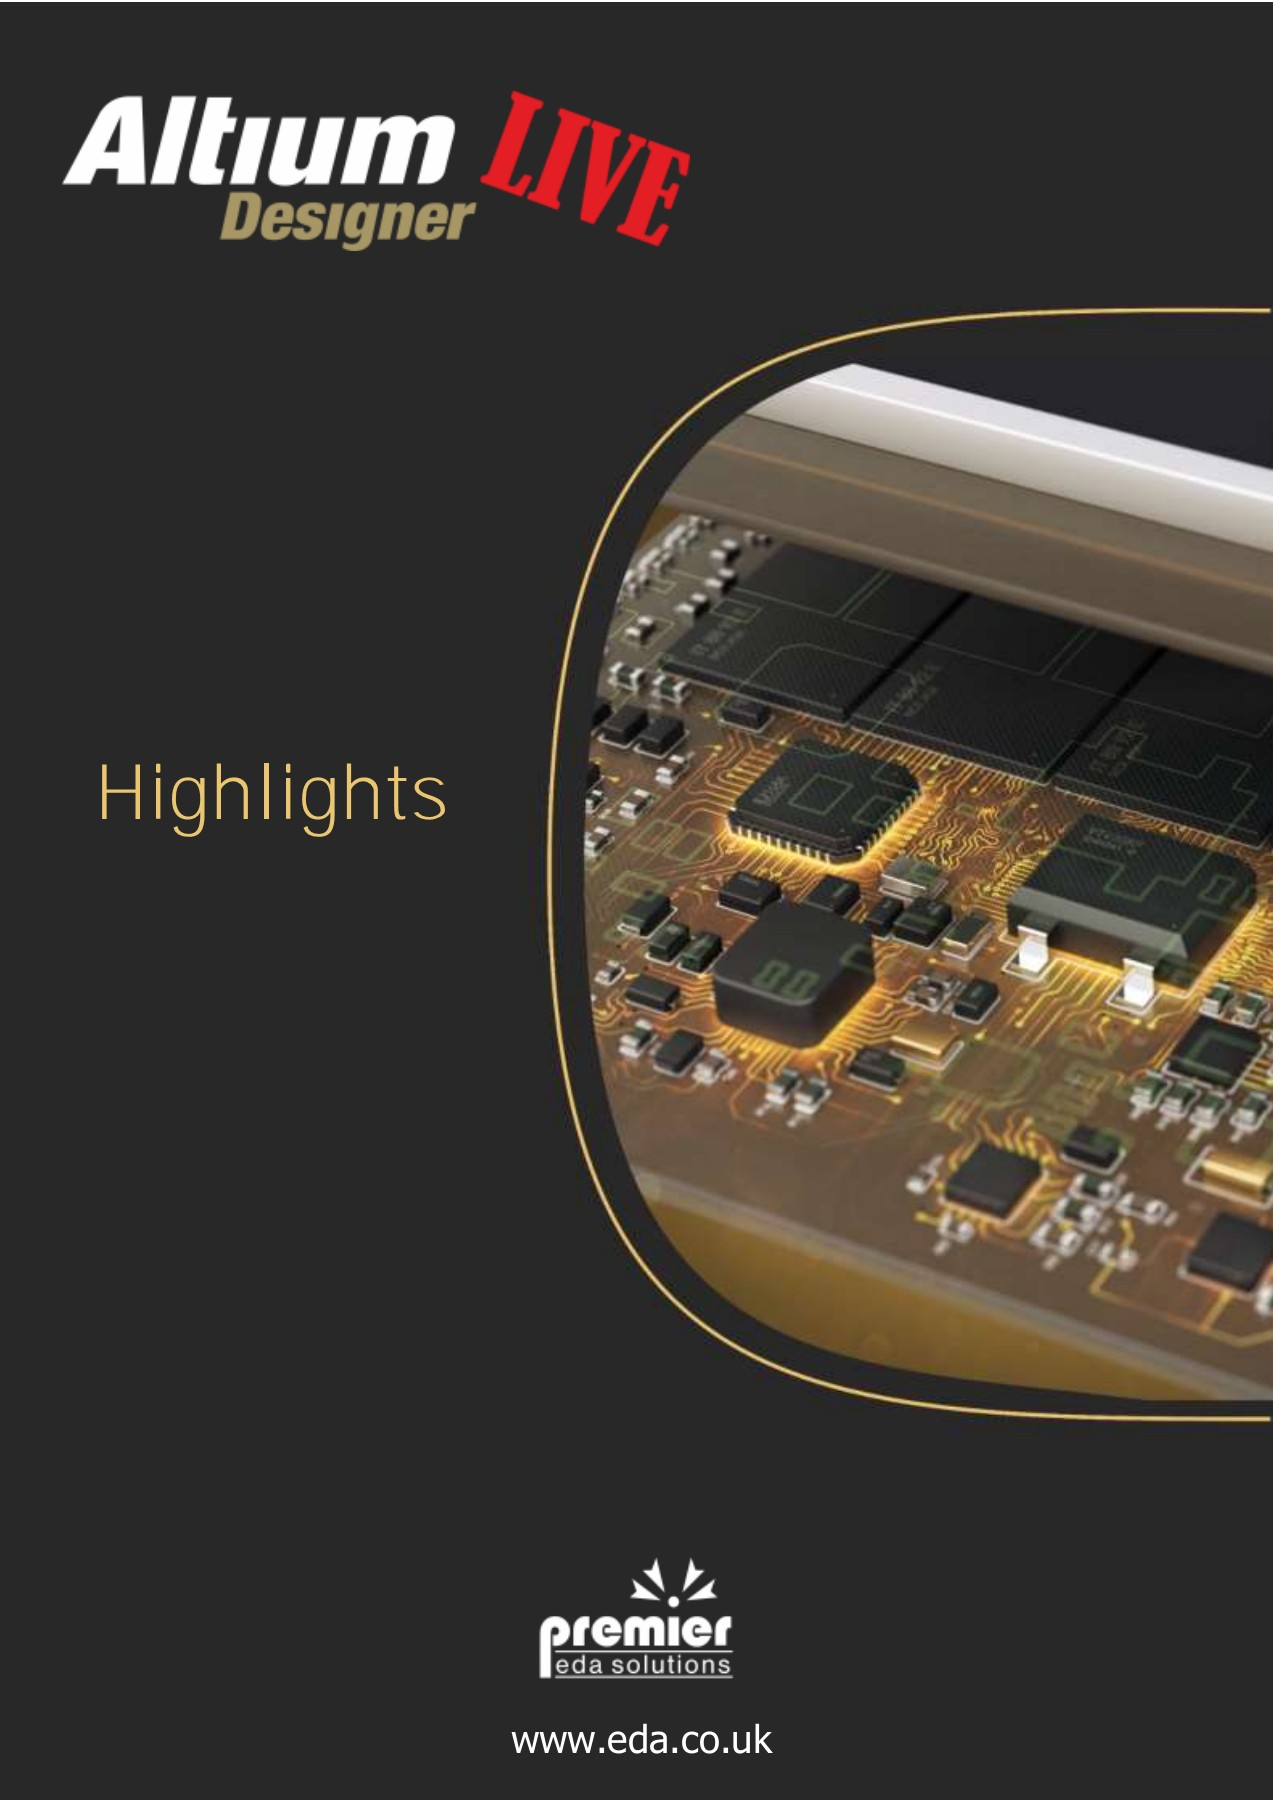 Altium Designer LIVE - event highlights Pages 1 - 23 - Text